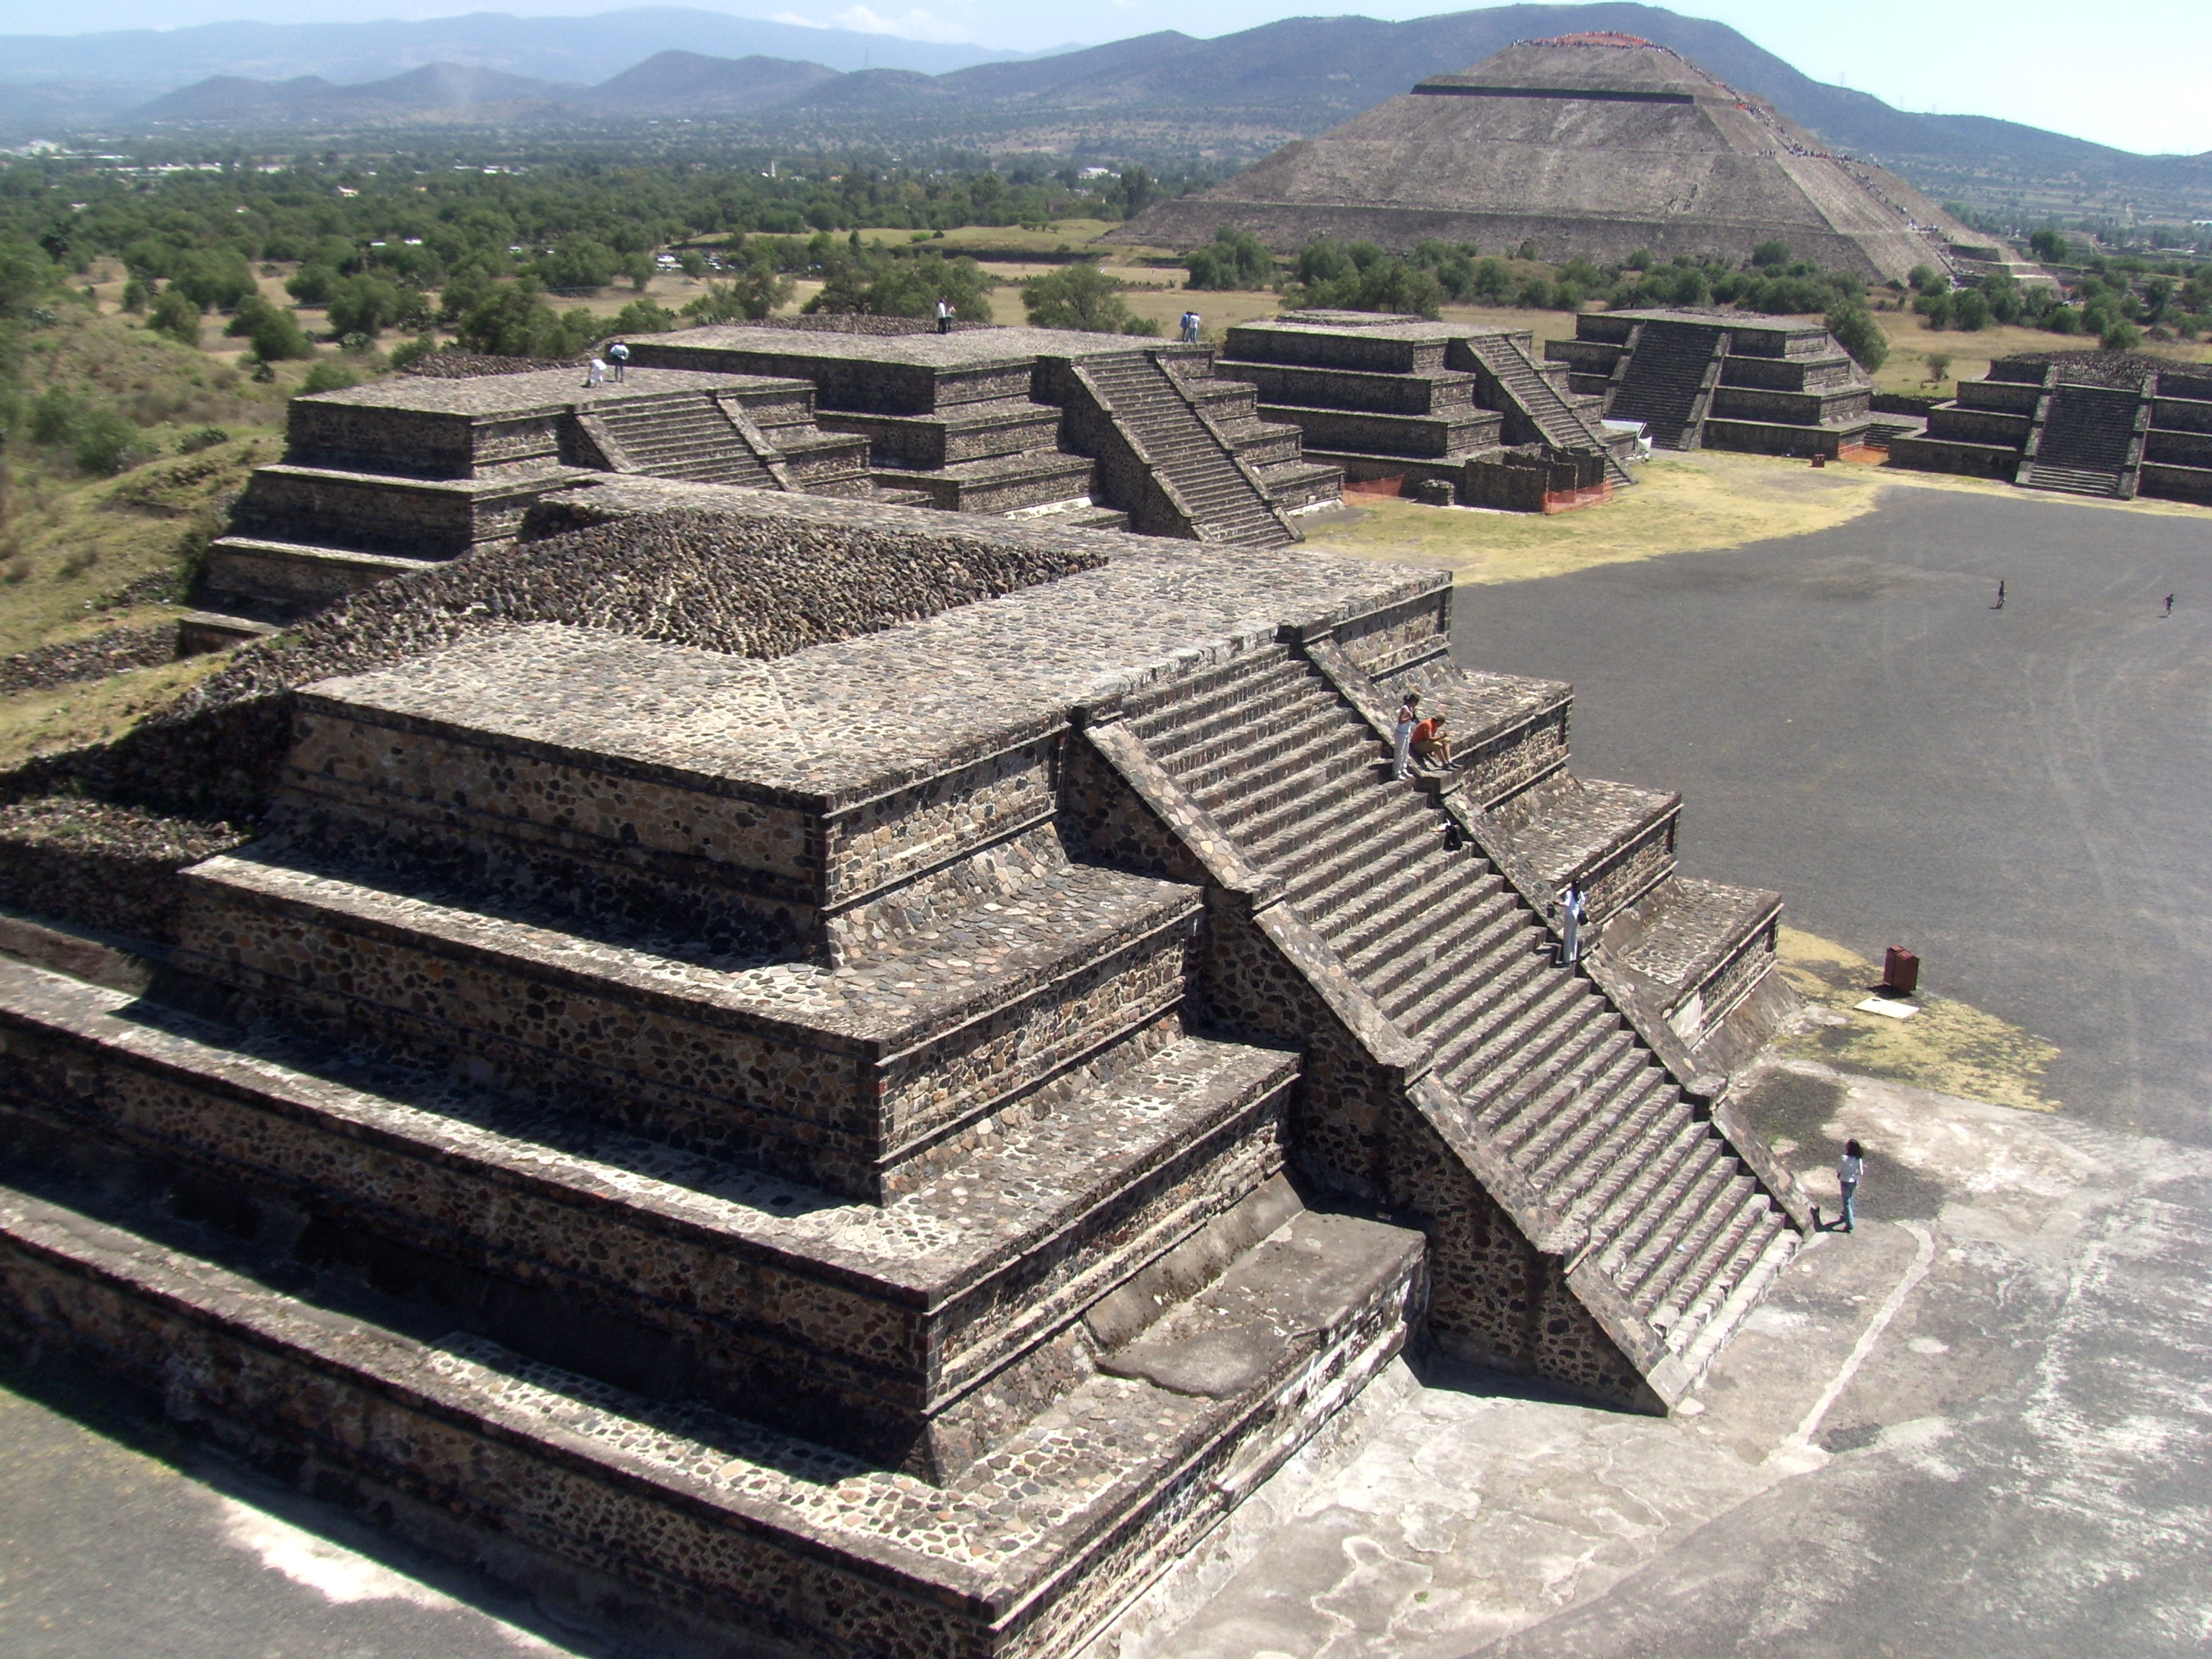 aztec-pyramid-of-the-moon